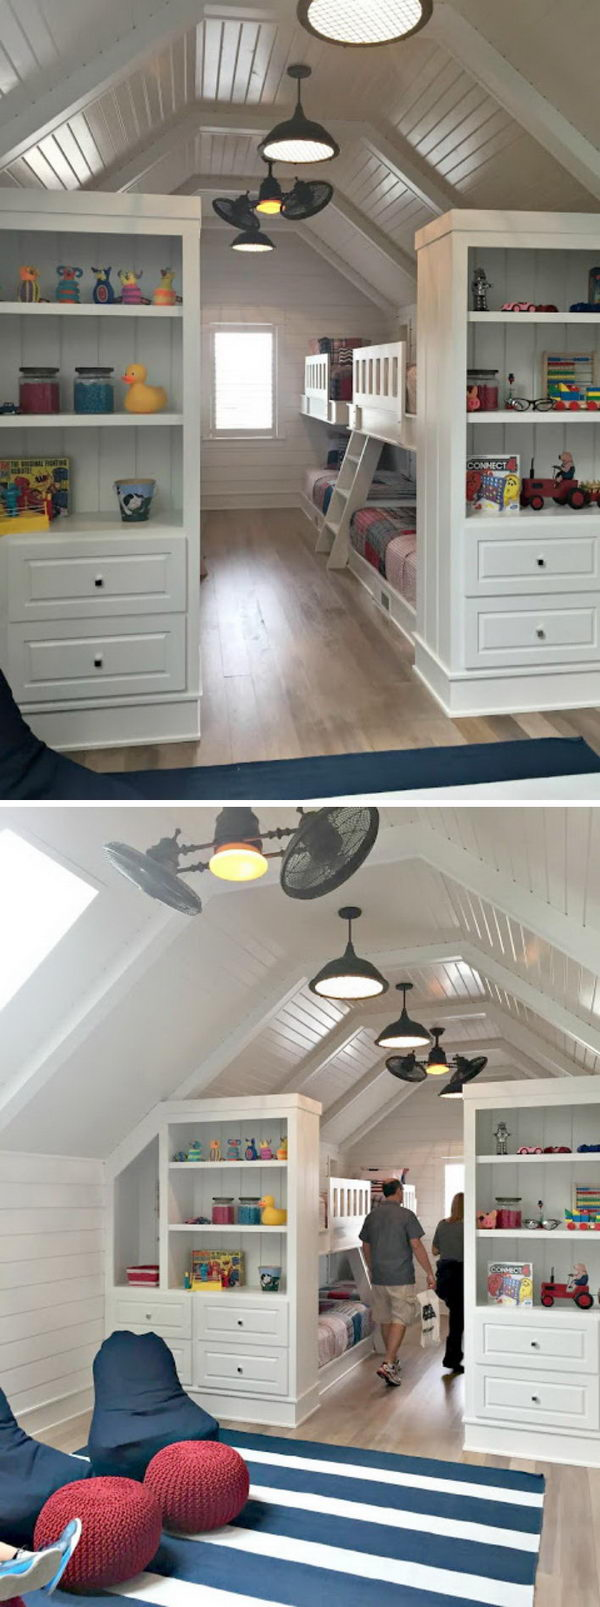 Add Bookcases at The End of The Bunk Beds in The Attic.